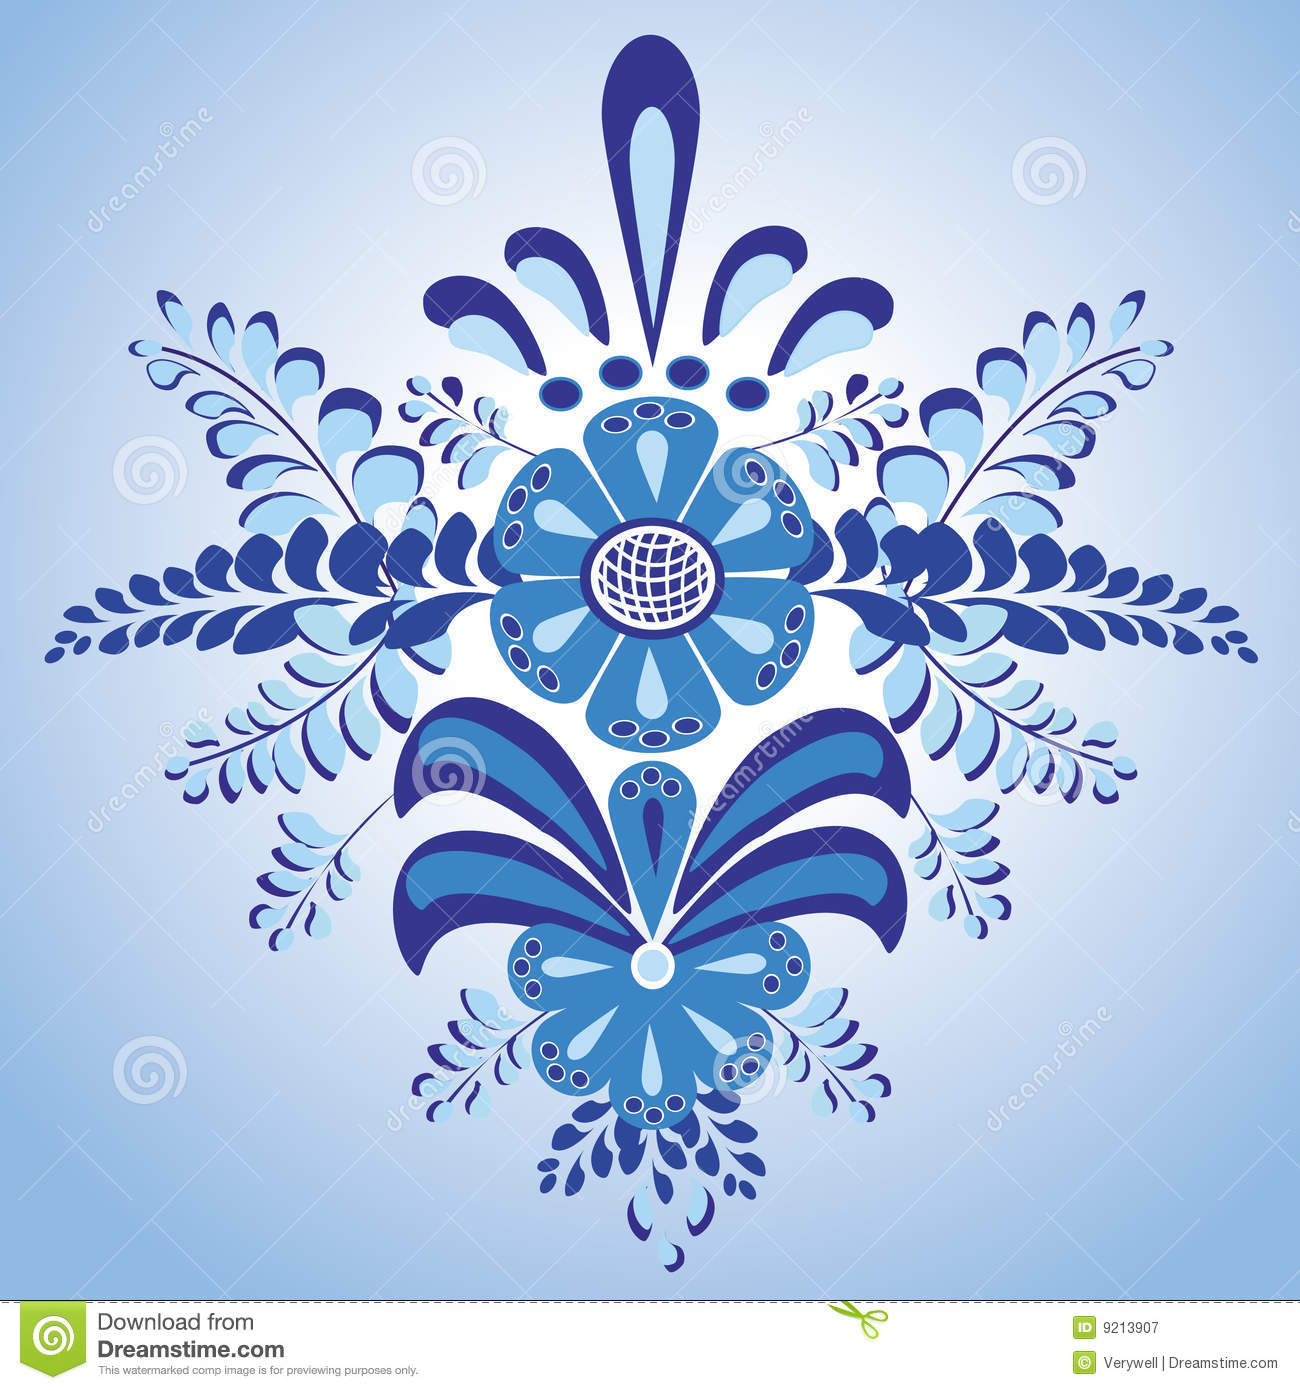 Floral vector design pattern